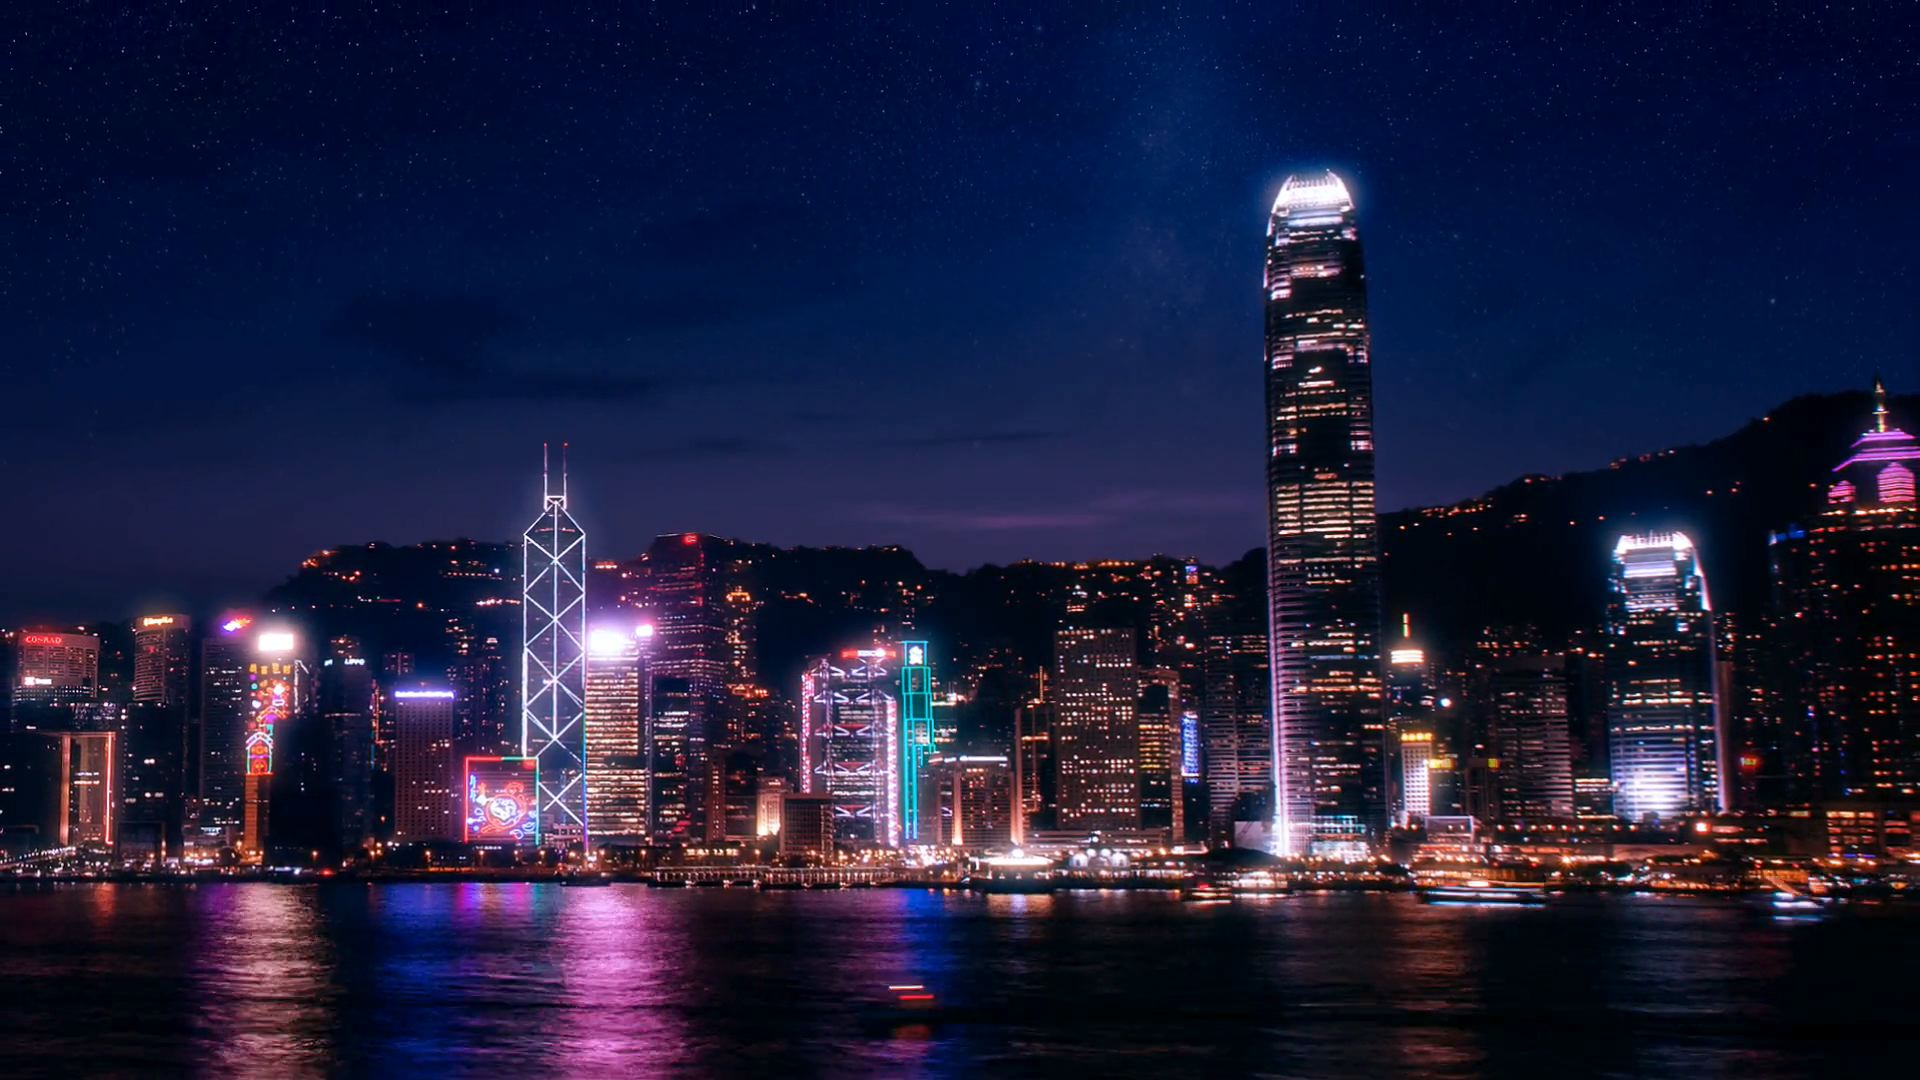 The Hong Kong skyline lights up the night.